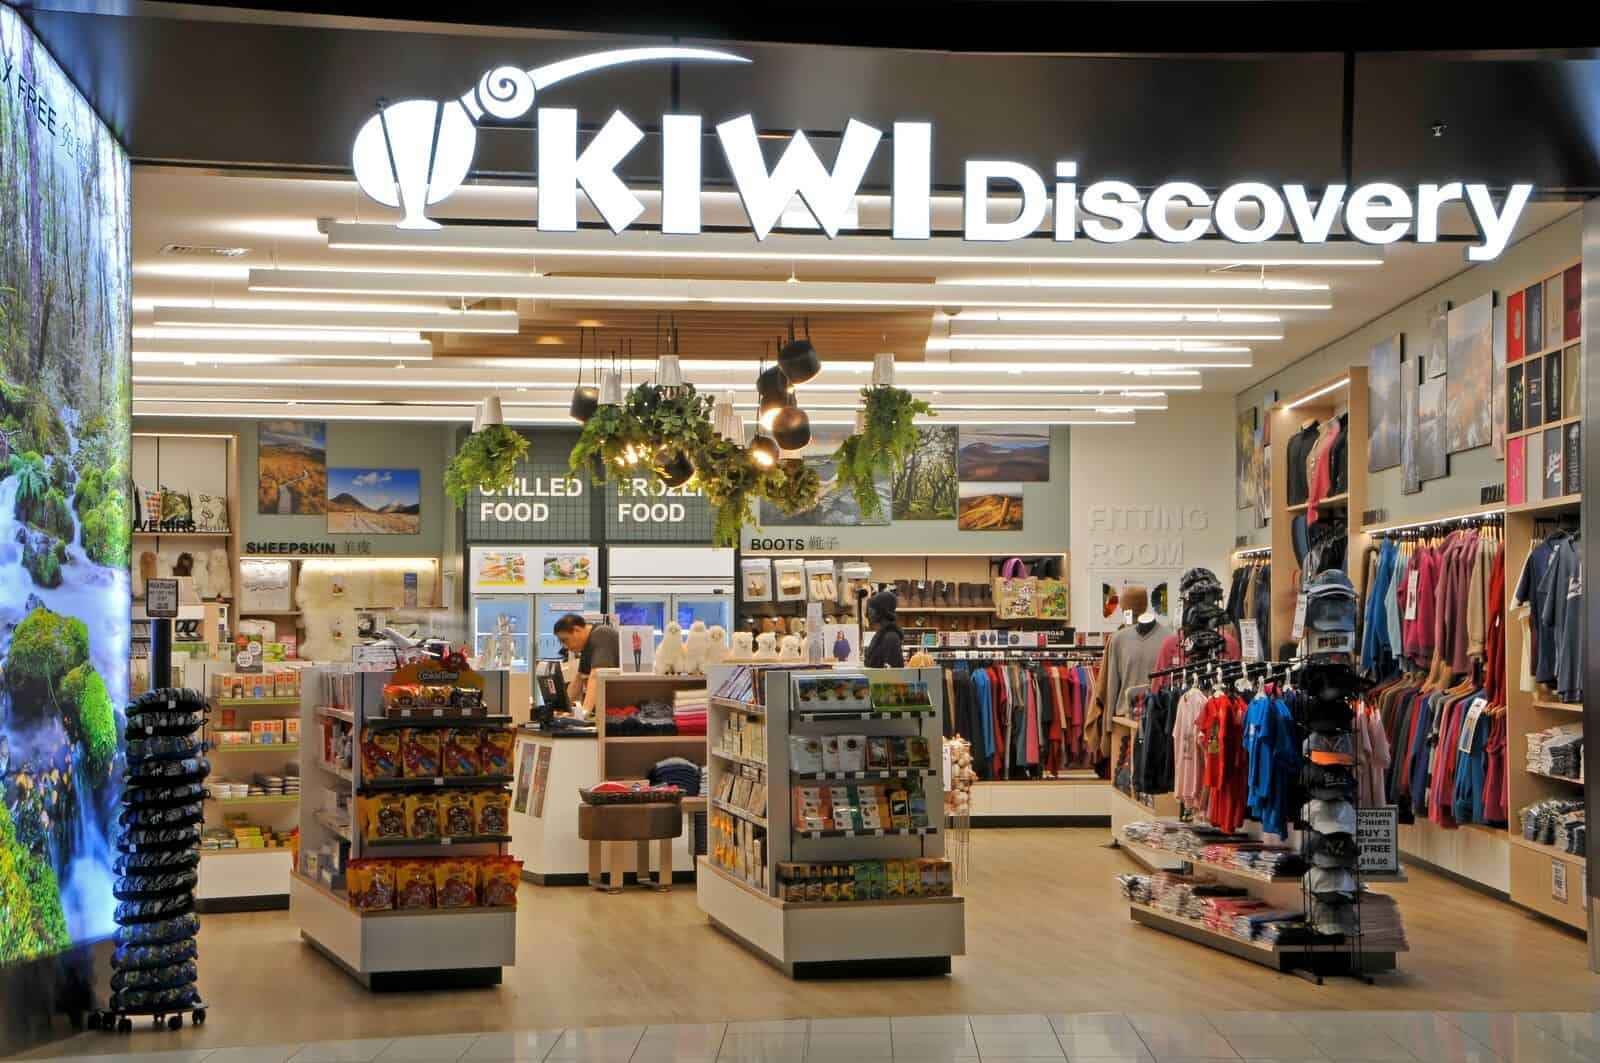 Kiwi Discovery store fitout by Datum Projects